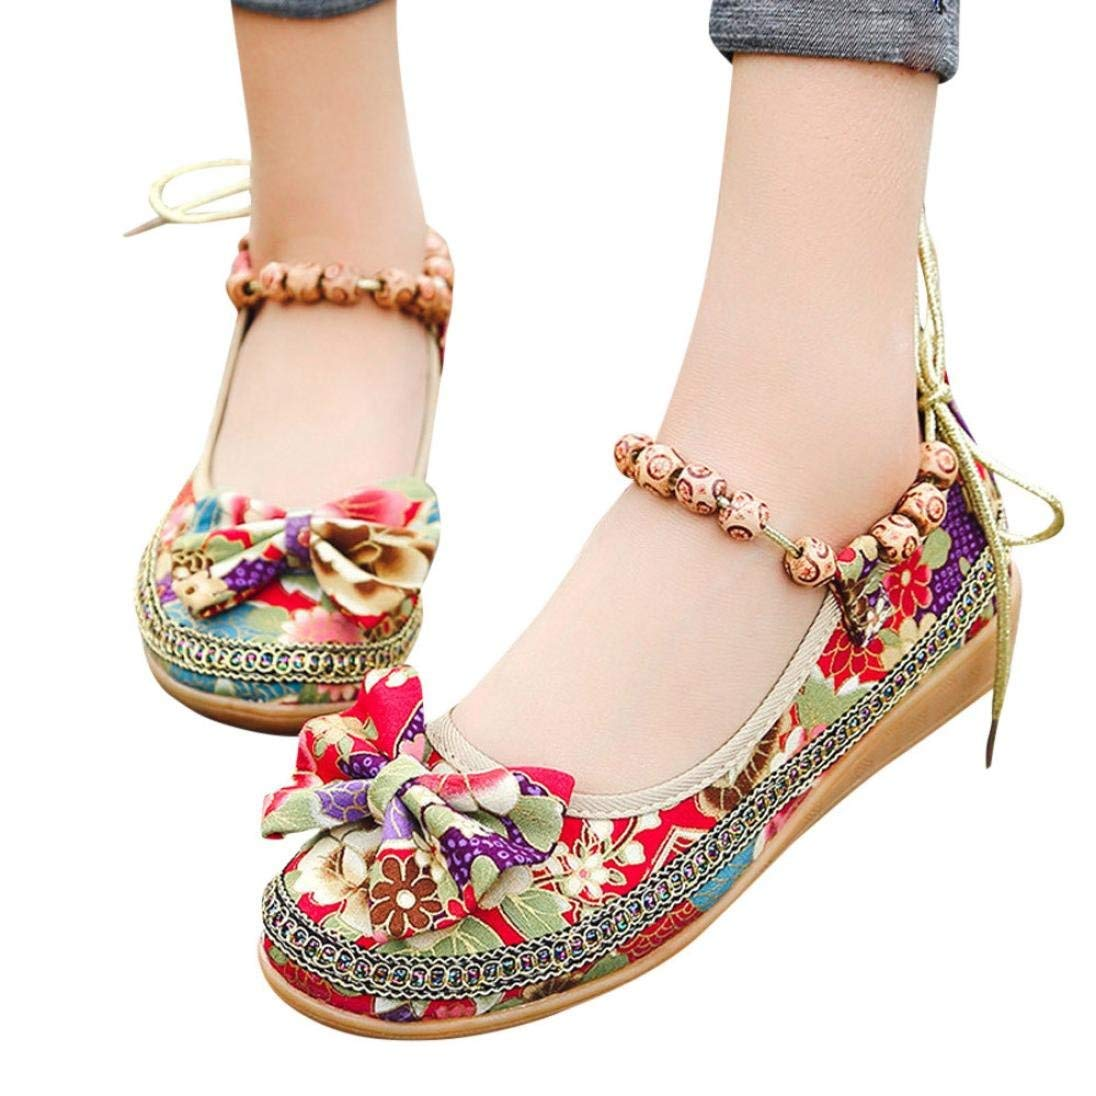 Gyoume Flat Sandals Shoes Womens Summer Girls Ladies Shoes Low Heel Shoes Embroidered Pearl Ankle Flat Casual Shoes